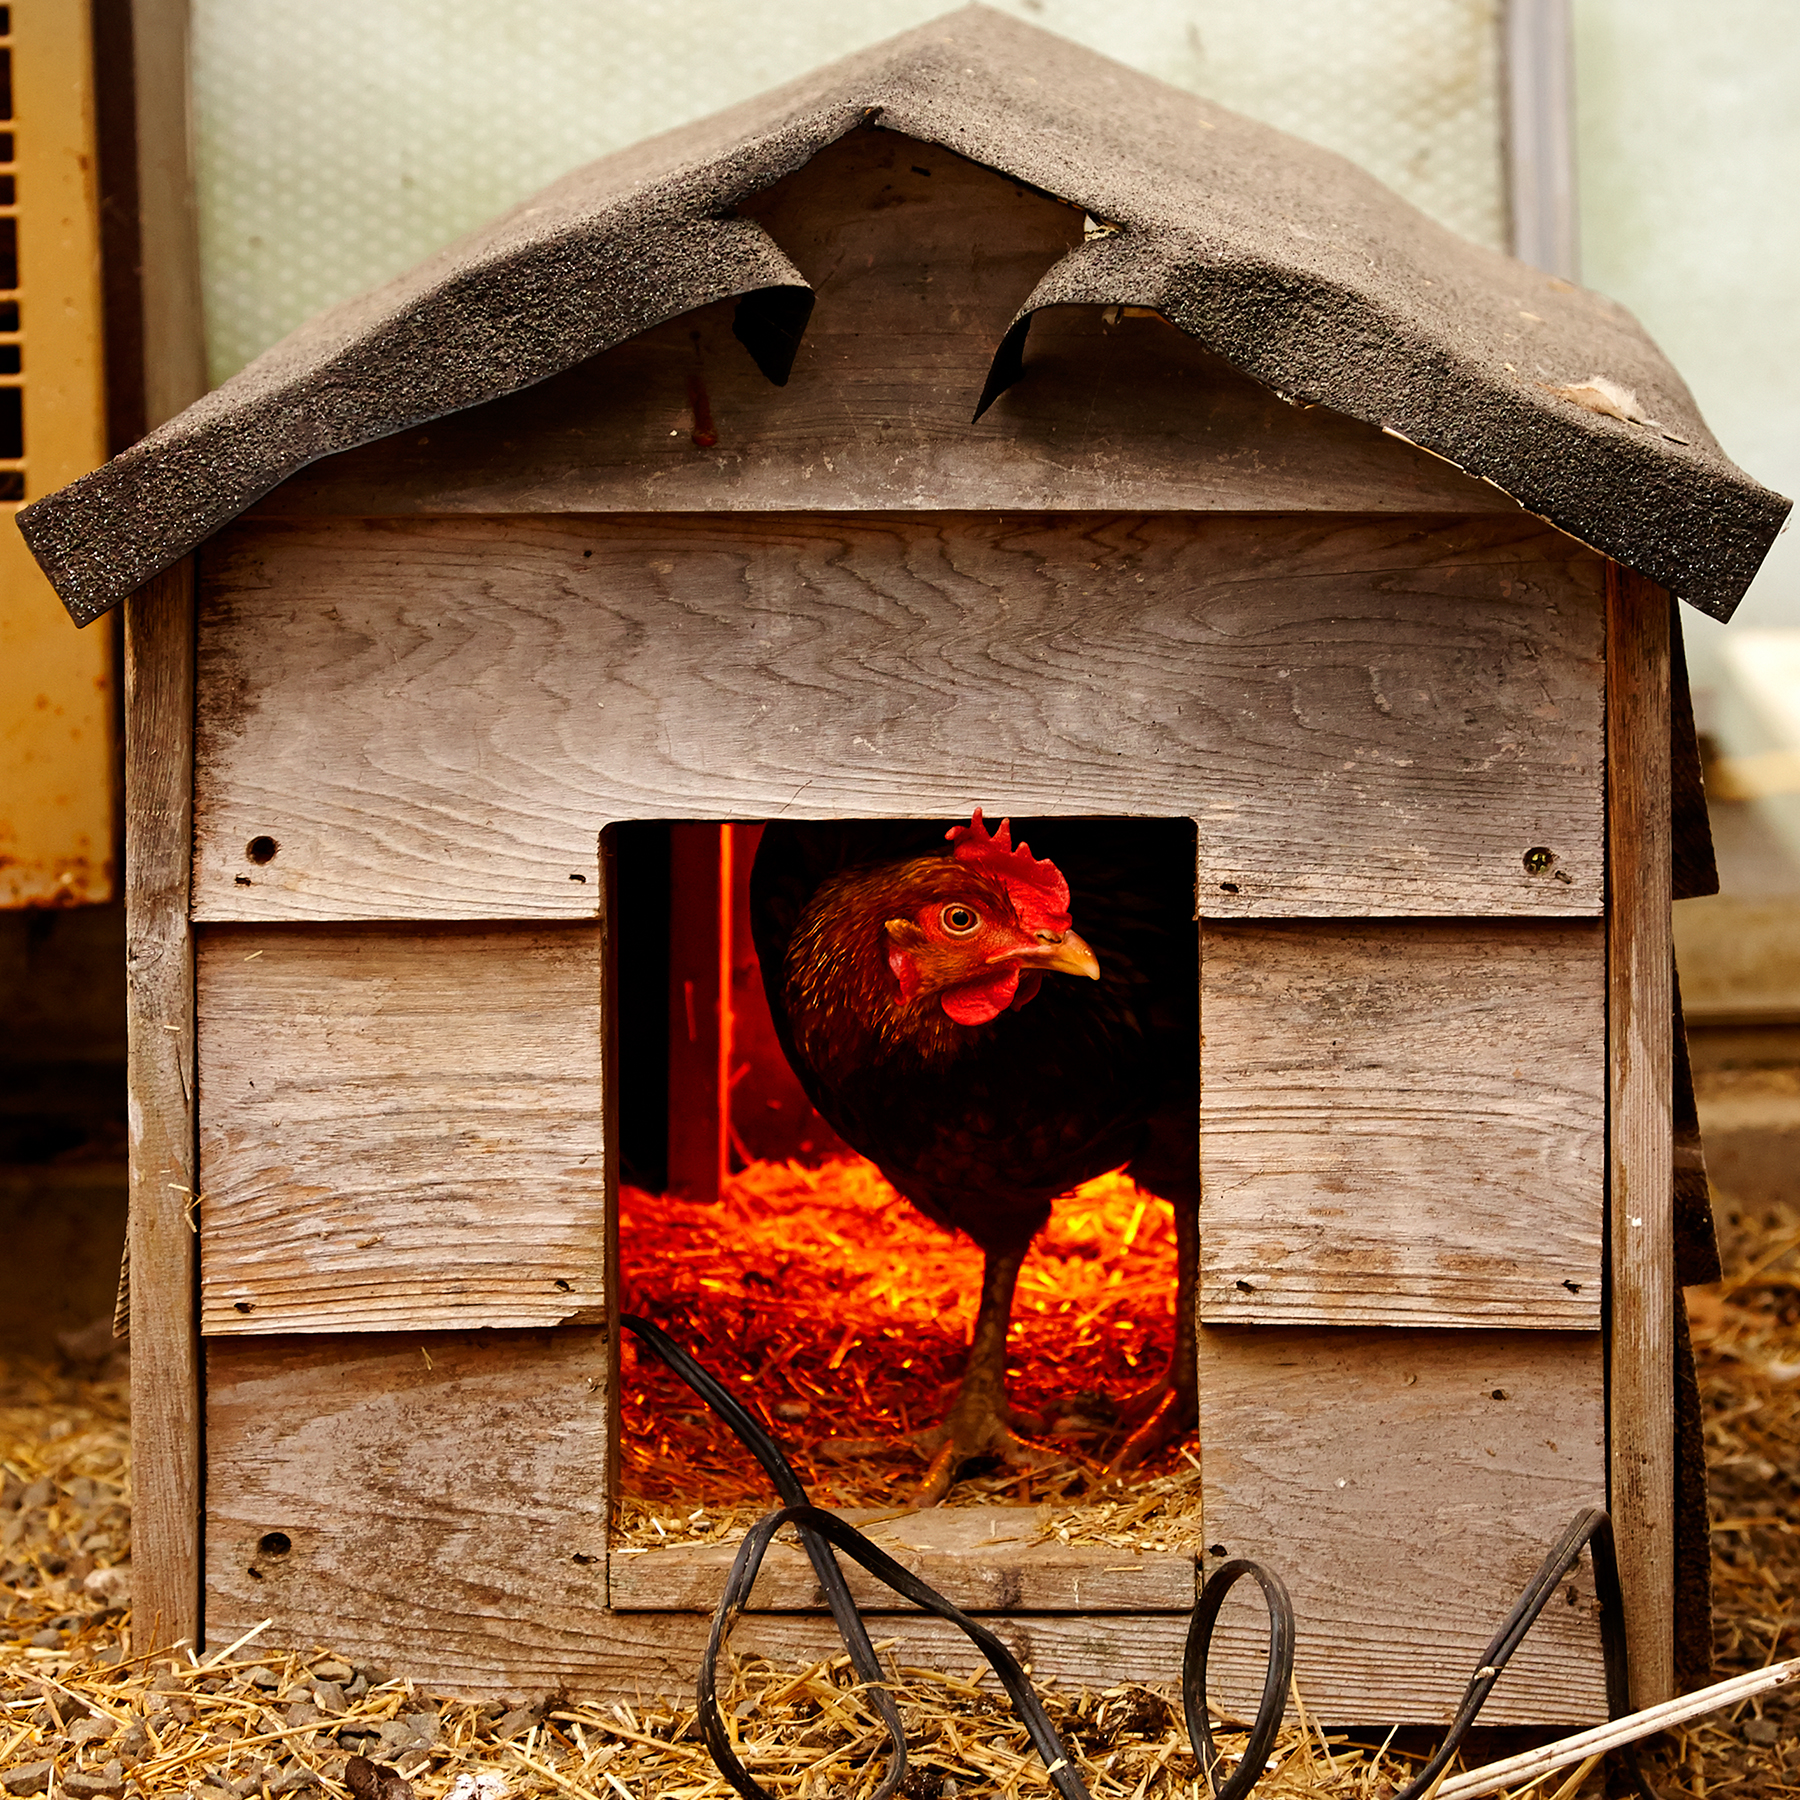 HEN-IN-FARM-HOUSE-01-WILTSHIRE-FARM-©-JONATHAN-R.-BECKERMAN-PHOTOGRAPHY.jpg